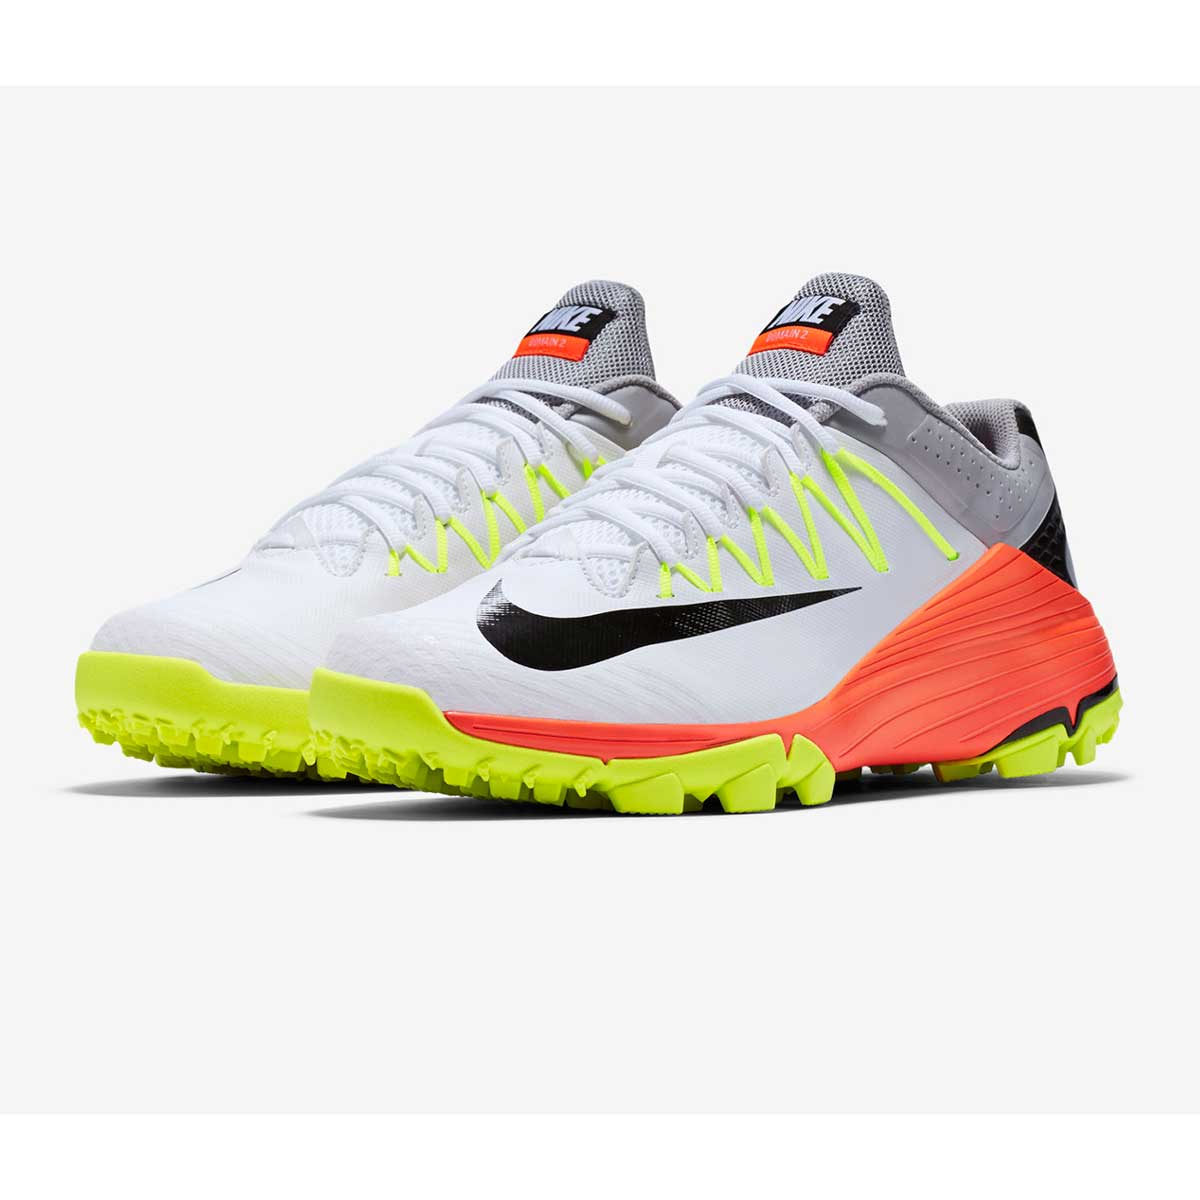 san francisco ad1b4 82cad Buy Nike Domain 2 Cricket Shoes Online India  Nike Cricket Shoes